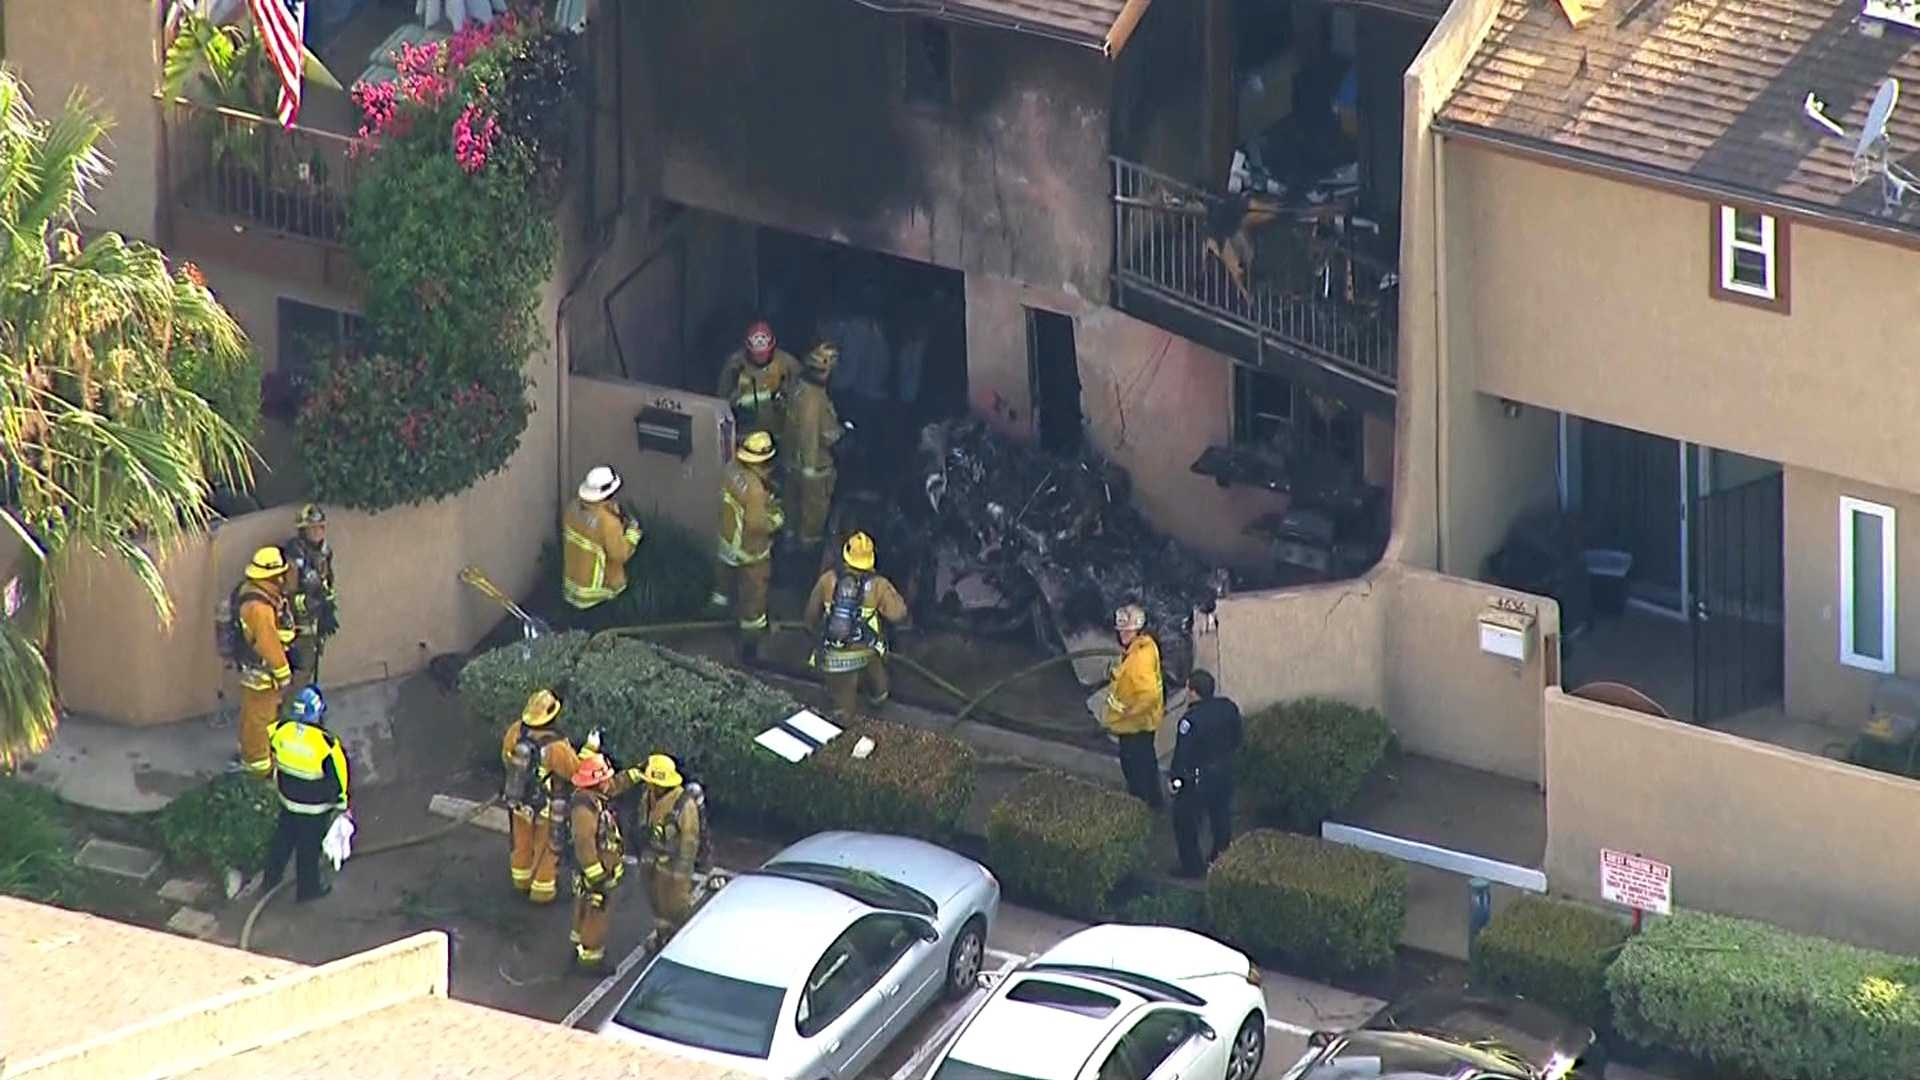 A plane crashed into the front of a town house Friday, June 10, 2016, in Hawthorne, California.